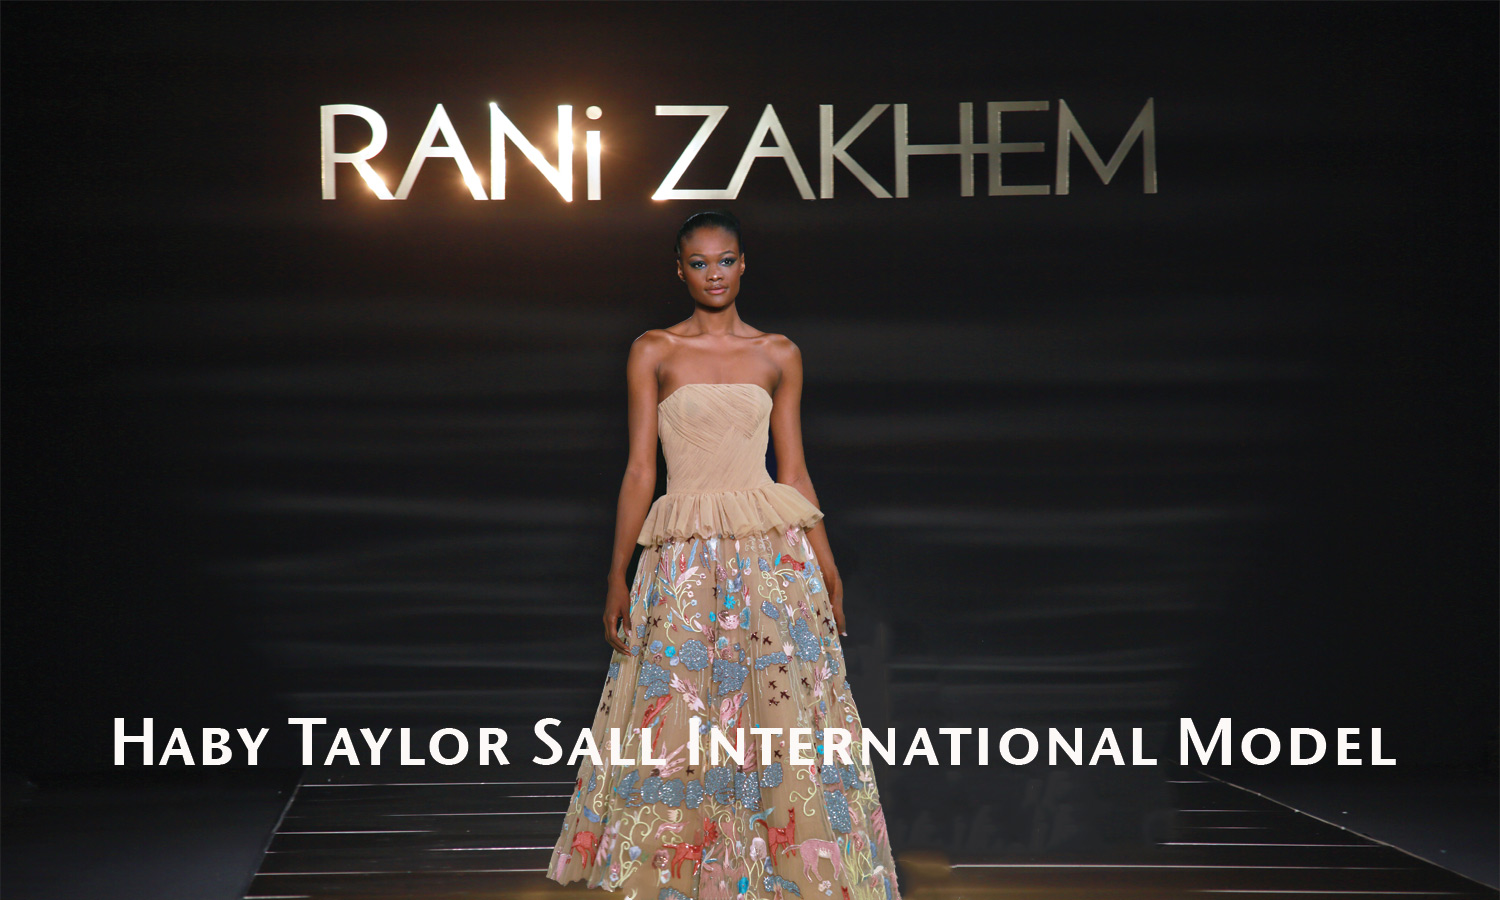 AFRICAN FASHION STYLE MAGAZINE - PARIS FASHION WEEK COUTURE BY RANI ZAKHEM - MODEL HAY TAYLOR SALL - RP MEPHISTOPHELES - DN AFRICA-STUDIO 24 NIGERIA